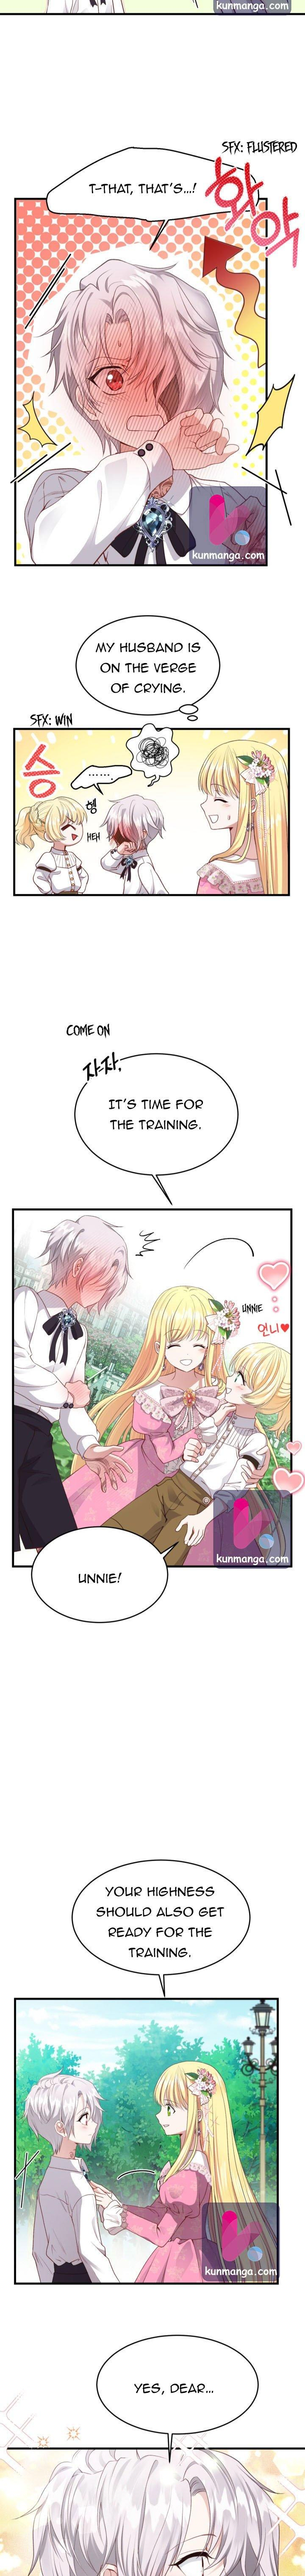 I Became The Wife Of The Monstrous Crown Prince Chapter 26.5 page 2 - Mangakakalots.com